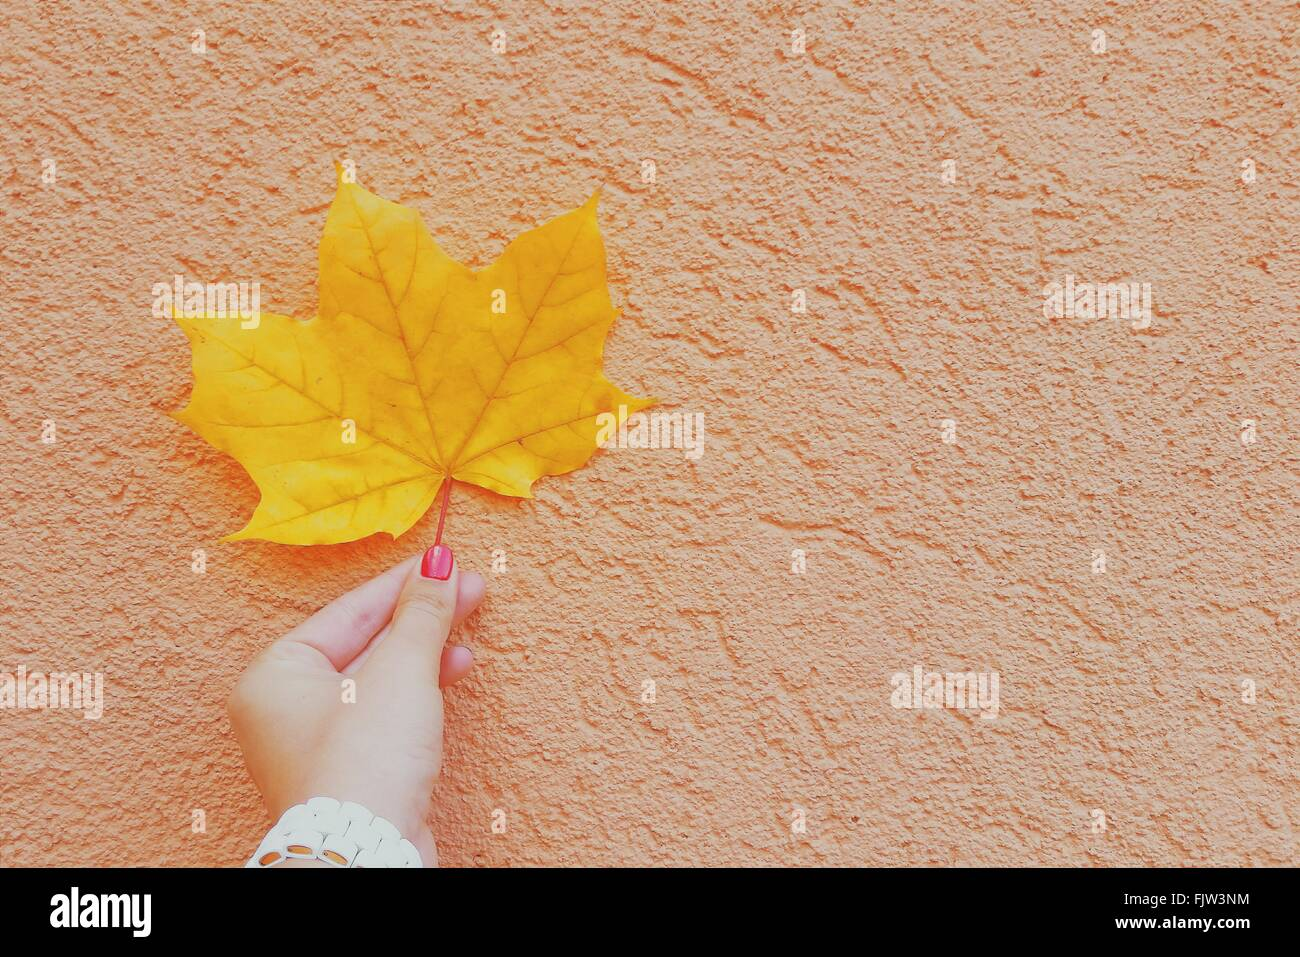 Cropped Image Of Woman Holding Dry Yellow Autumn Leaf Against Wall - Stock Image